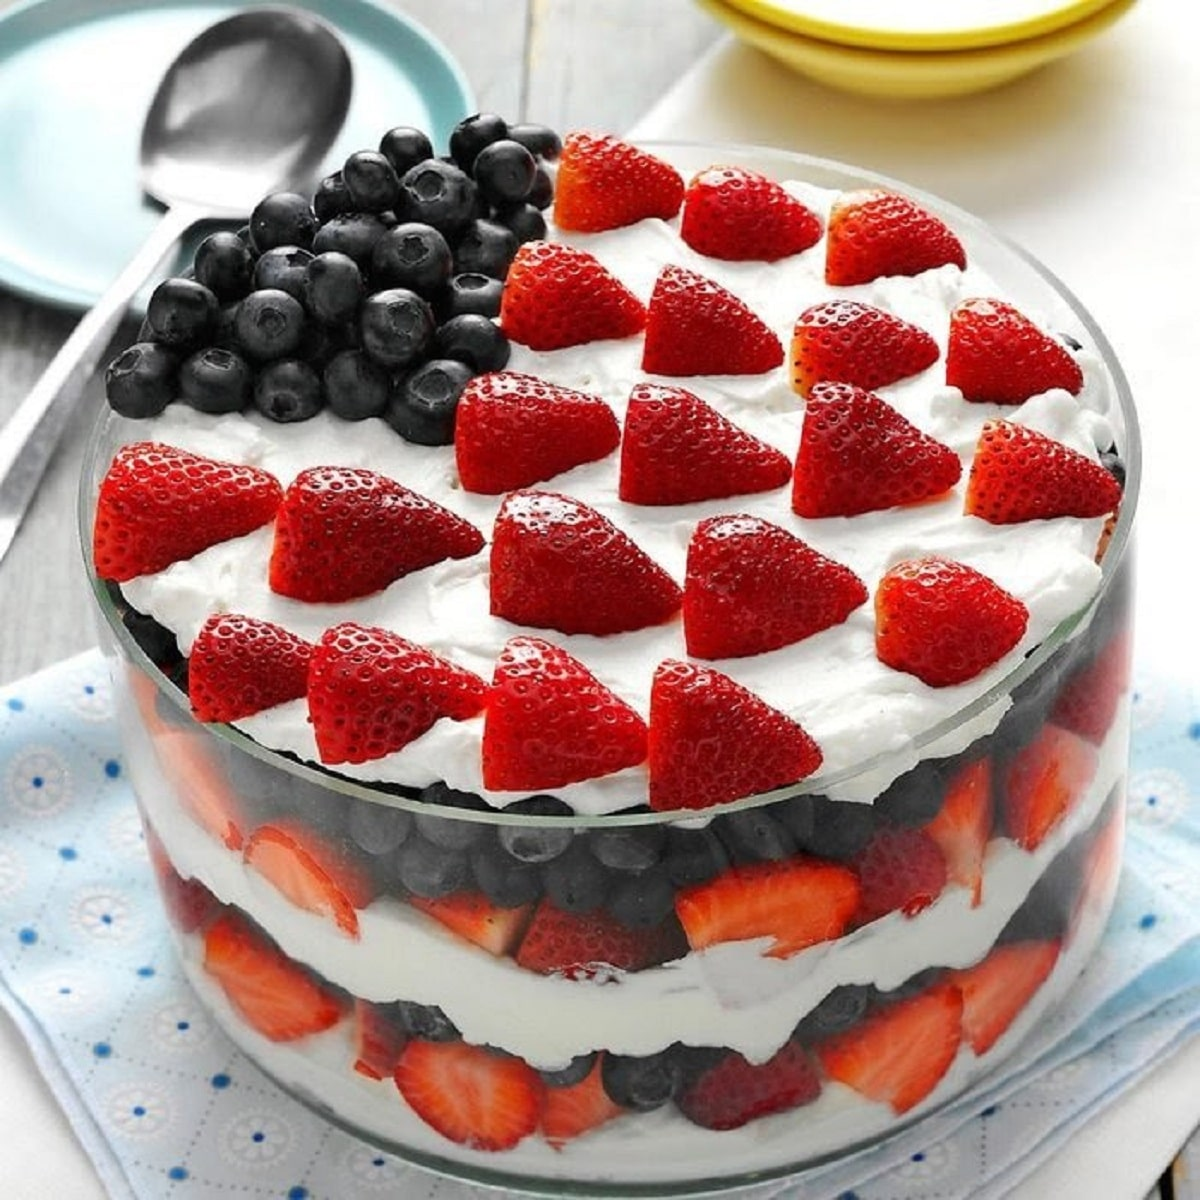 Large trifle bowl layered with cool whip strawberries and blueberries